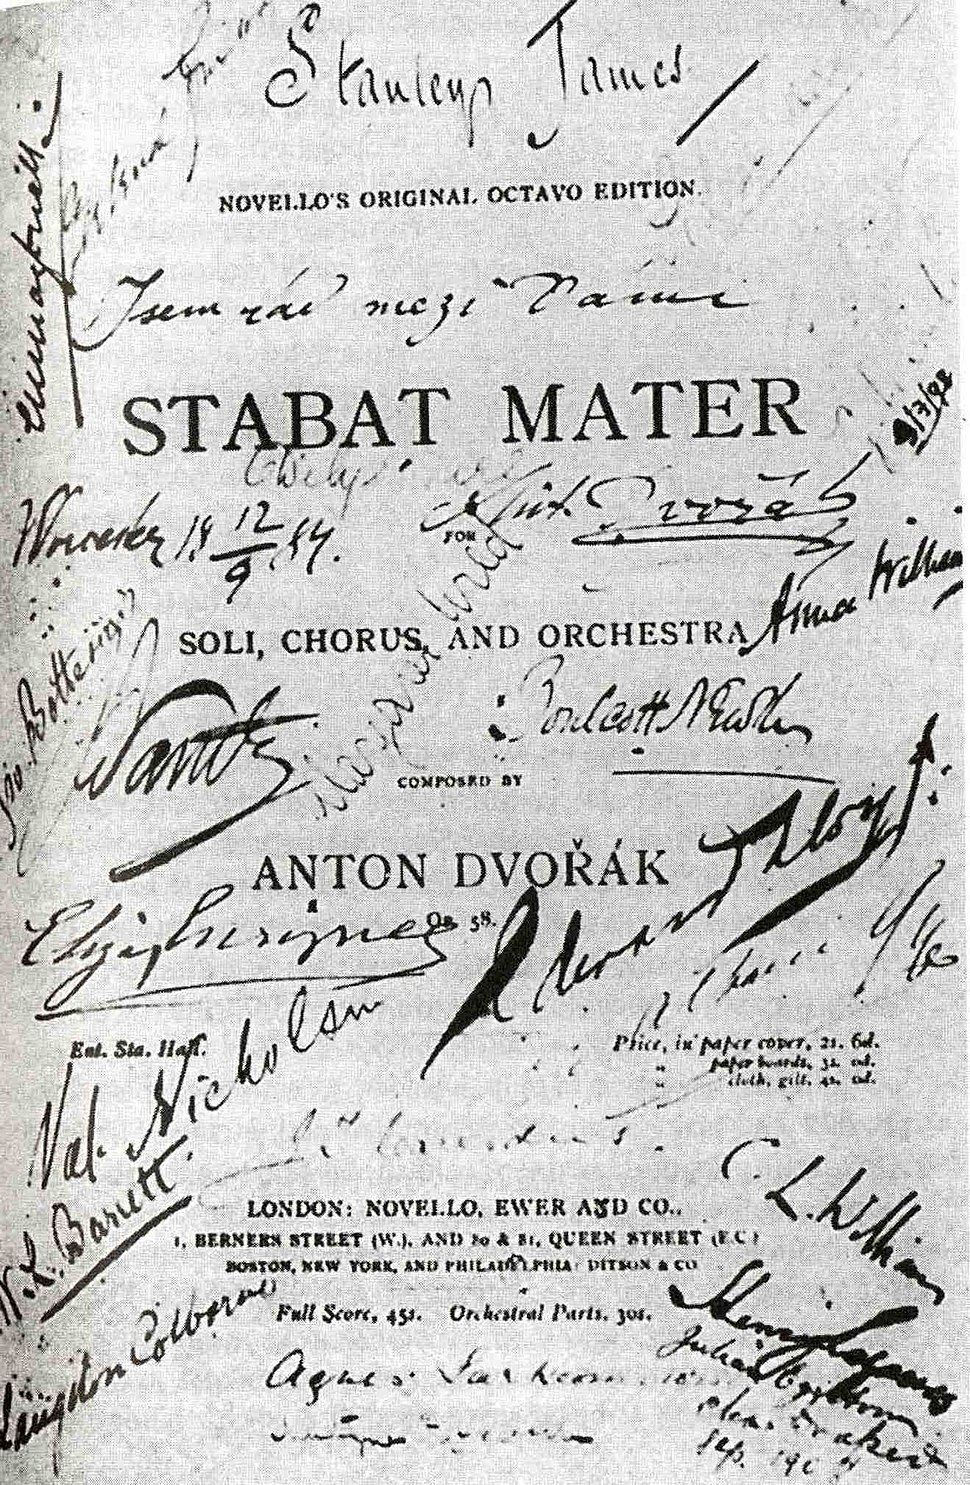 Remembrance of the performance of Stabat Mater in Worcester on 12 September, 1884.